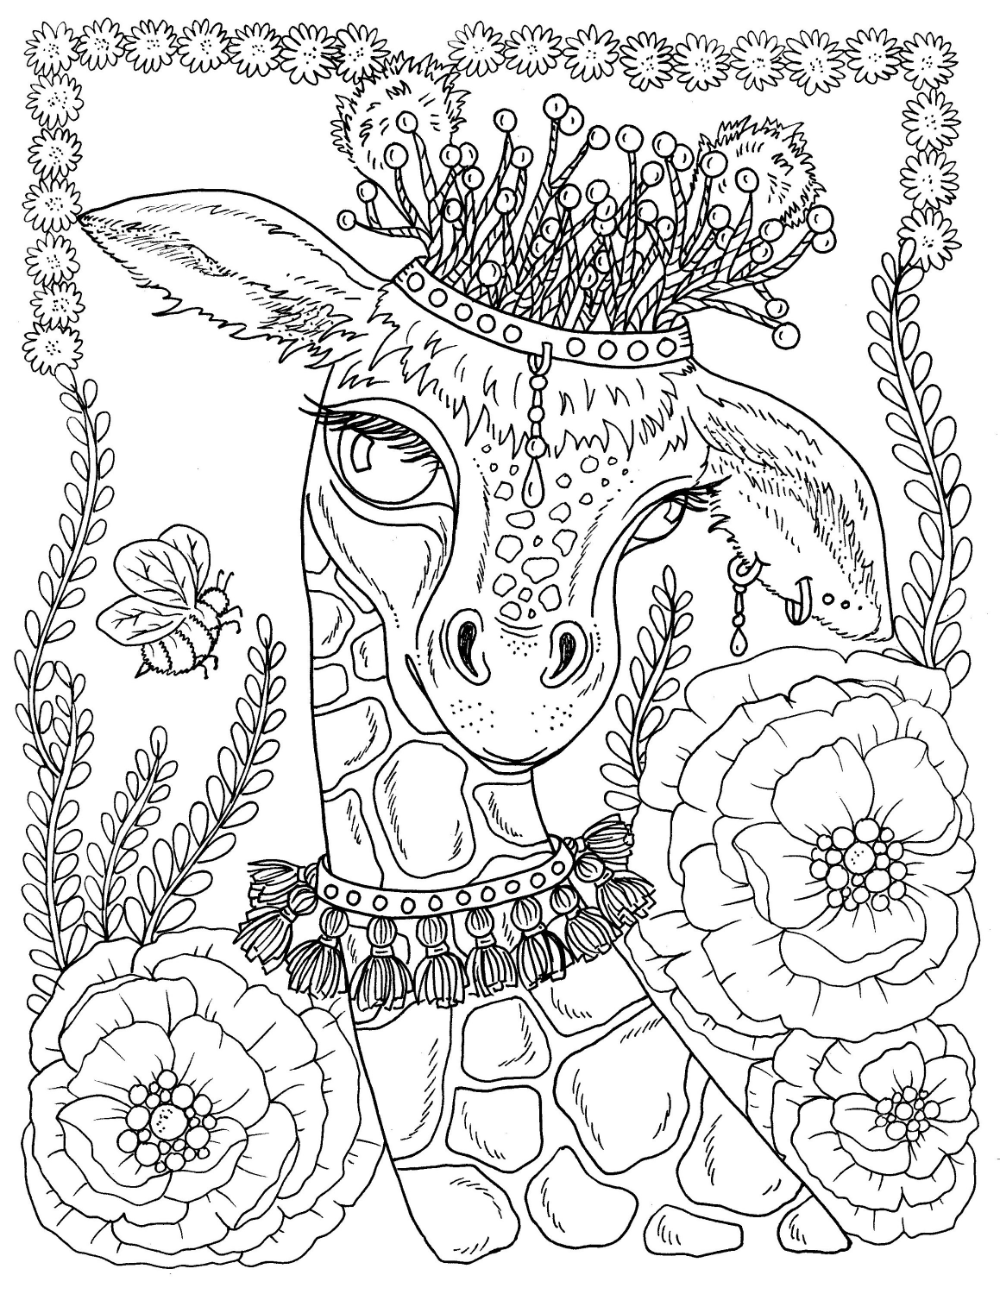 Digital Download Spring Animals To Color Instant Download Etsy Animal Coloring Pages Coloring Pages Disney Coloring Pages